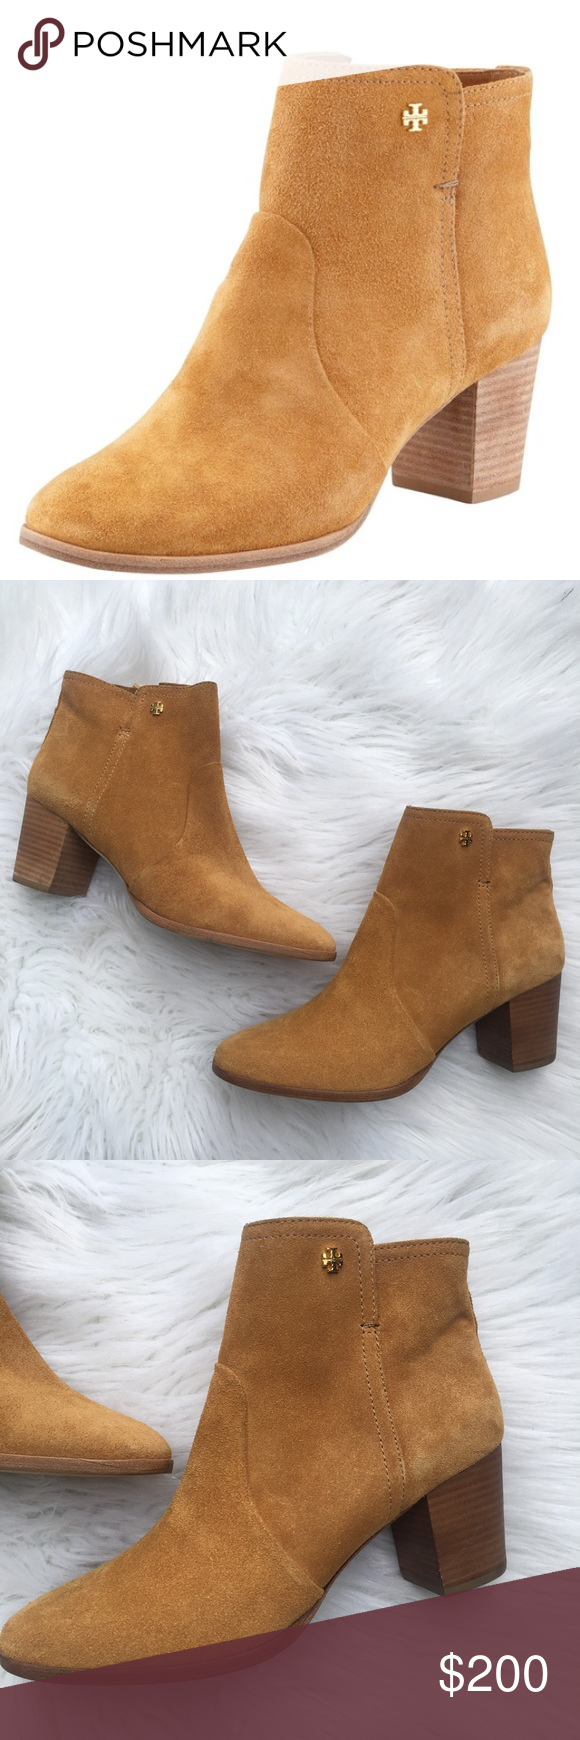 92354a7b12782 Tory Burch Suede Sabe Booties Perfect for fall. I m amazing condition. Worn  to try on only. Size 10. Tory Burch Shoes Ankle Boots   Booties